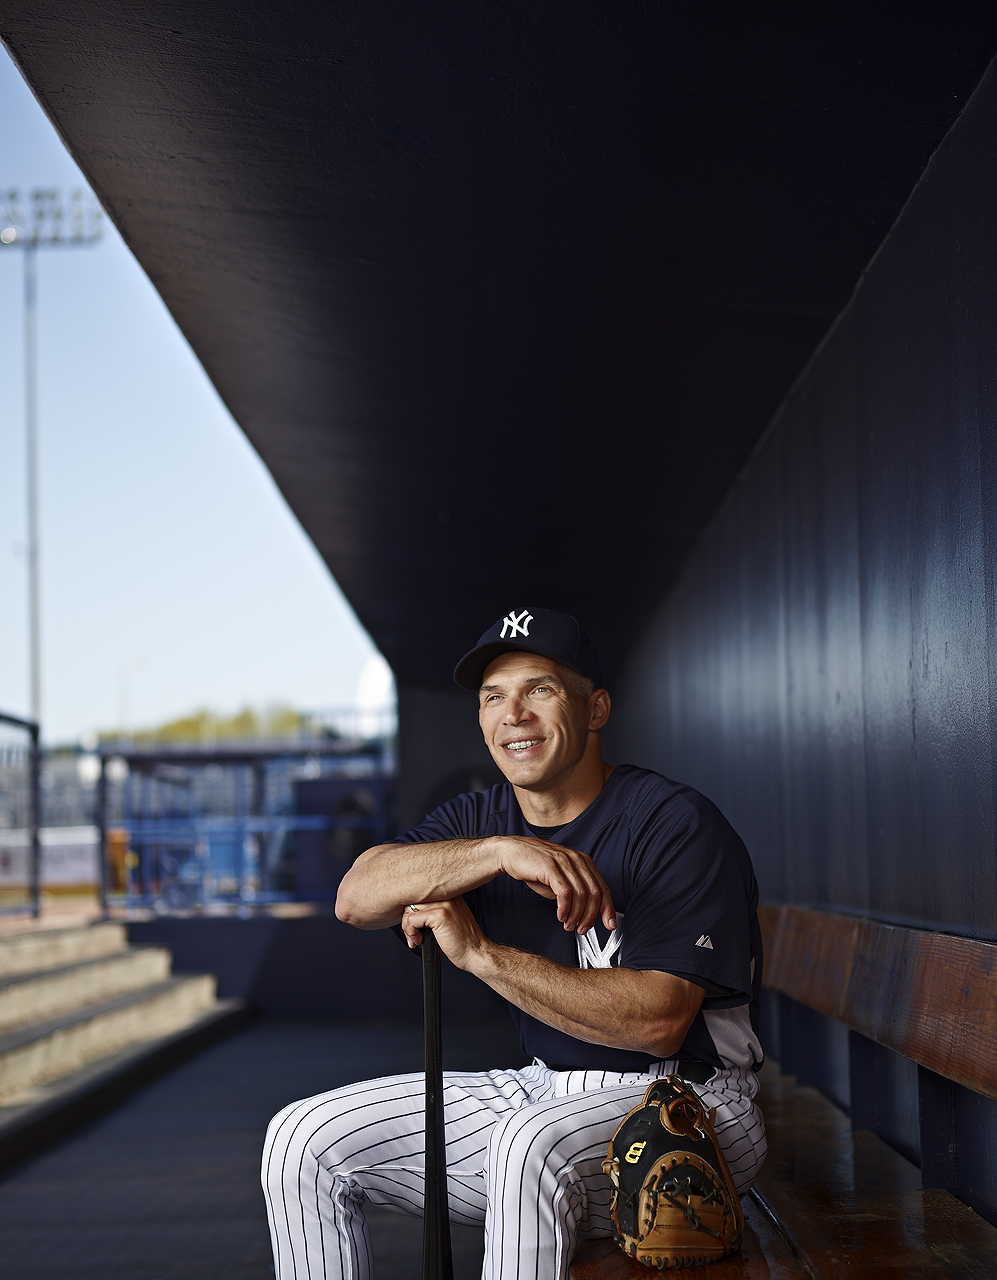 Joe Girardi  |  New York Yankees  |  Sports Fitness photographer Jeffery Salter